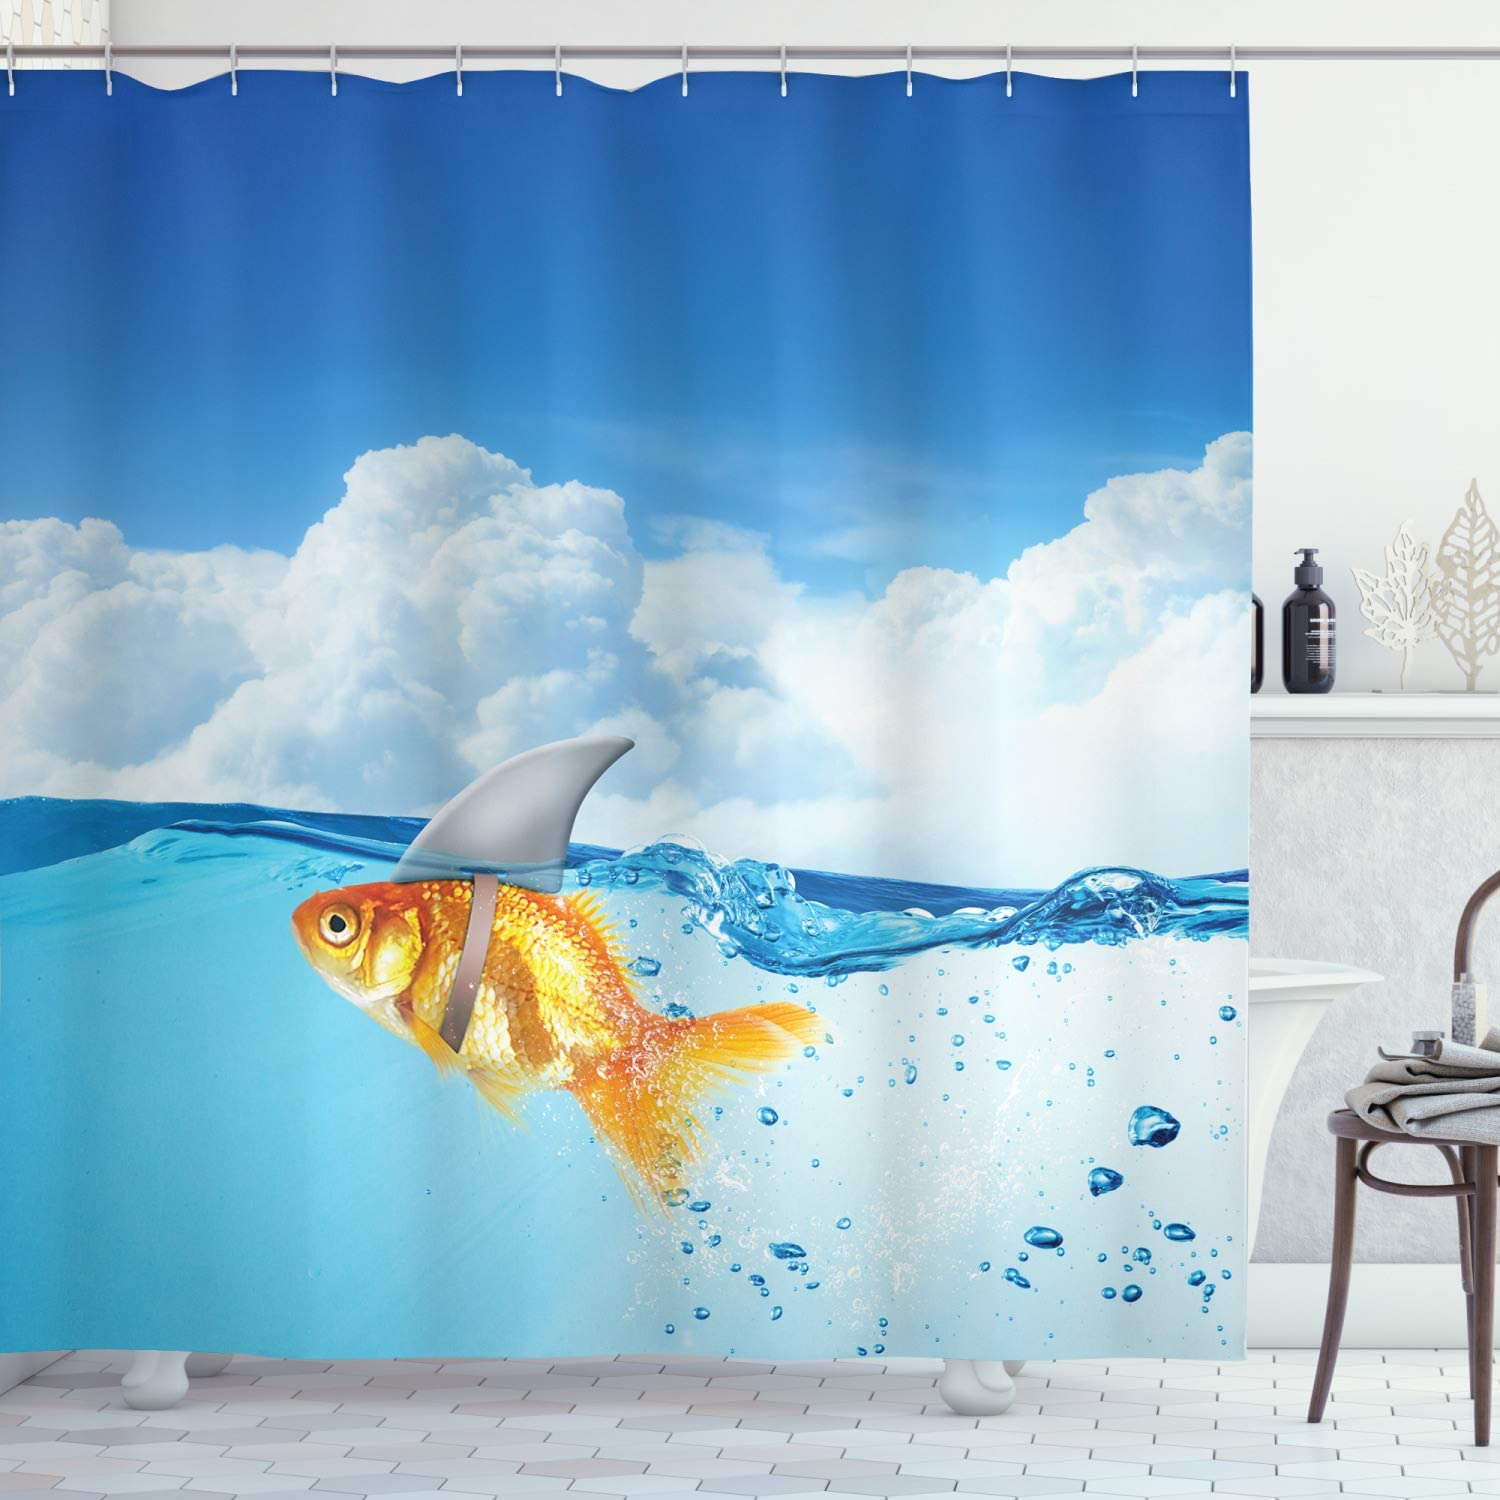 """Ambesonne Shark Shower Curtain, Goldfish with Shark Fin on Top of The Water Fake Comical Humorous Nature Image, Cloth Fabric Bathroom Decor Set with Hooks, 70"""" Long, Blue Orange"""